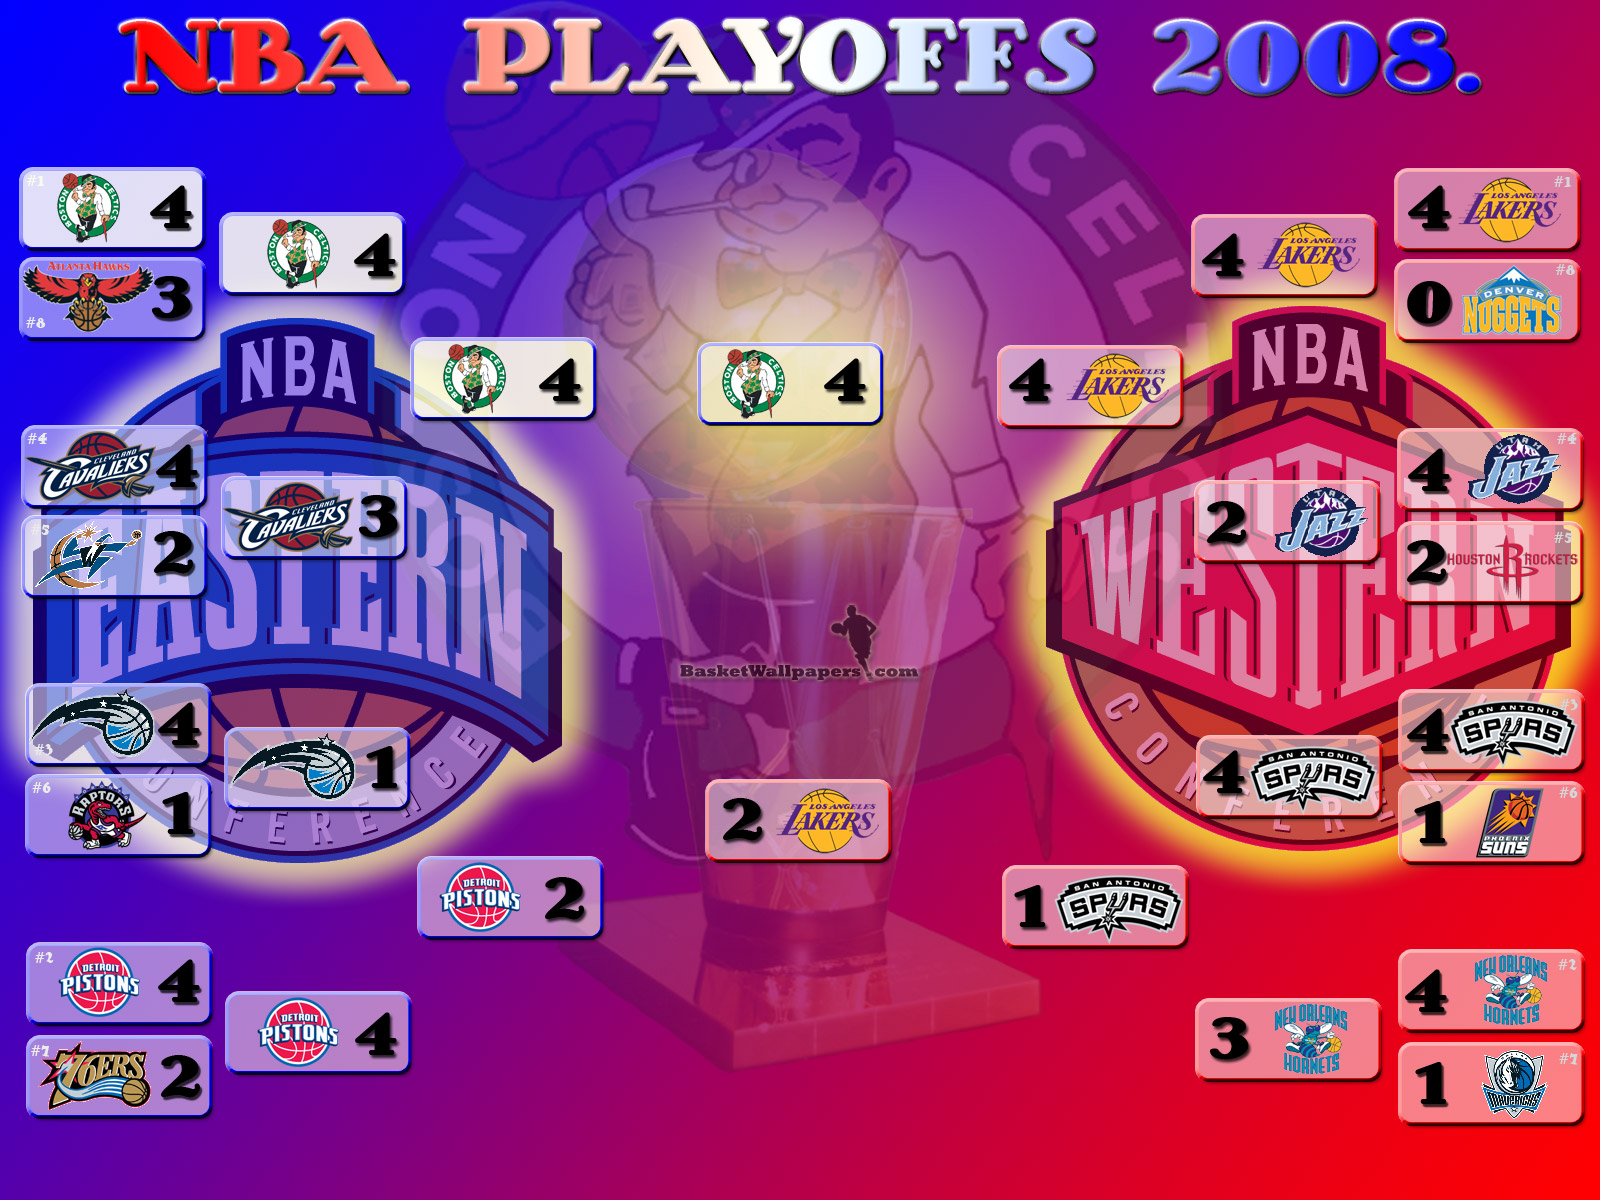 NBA Playoffs 2008 Wallpaper | Basketball Wallpapers at ...